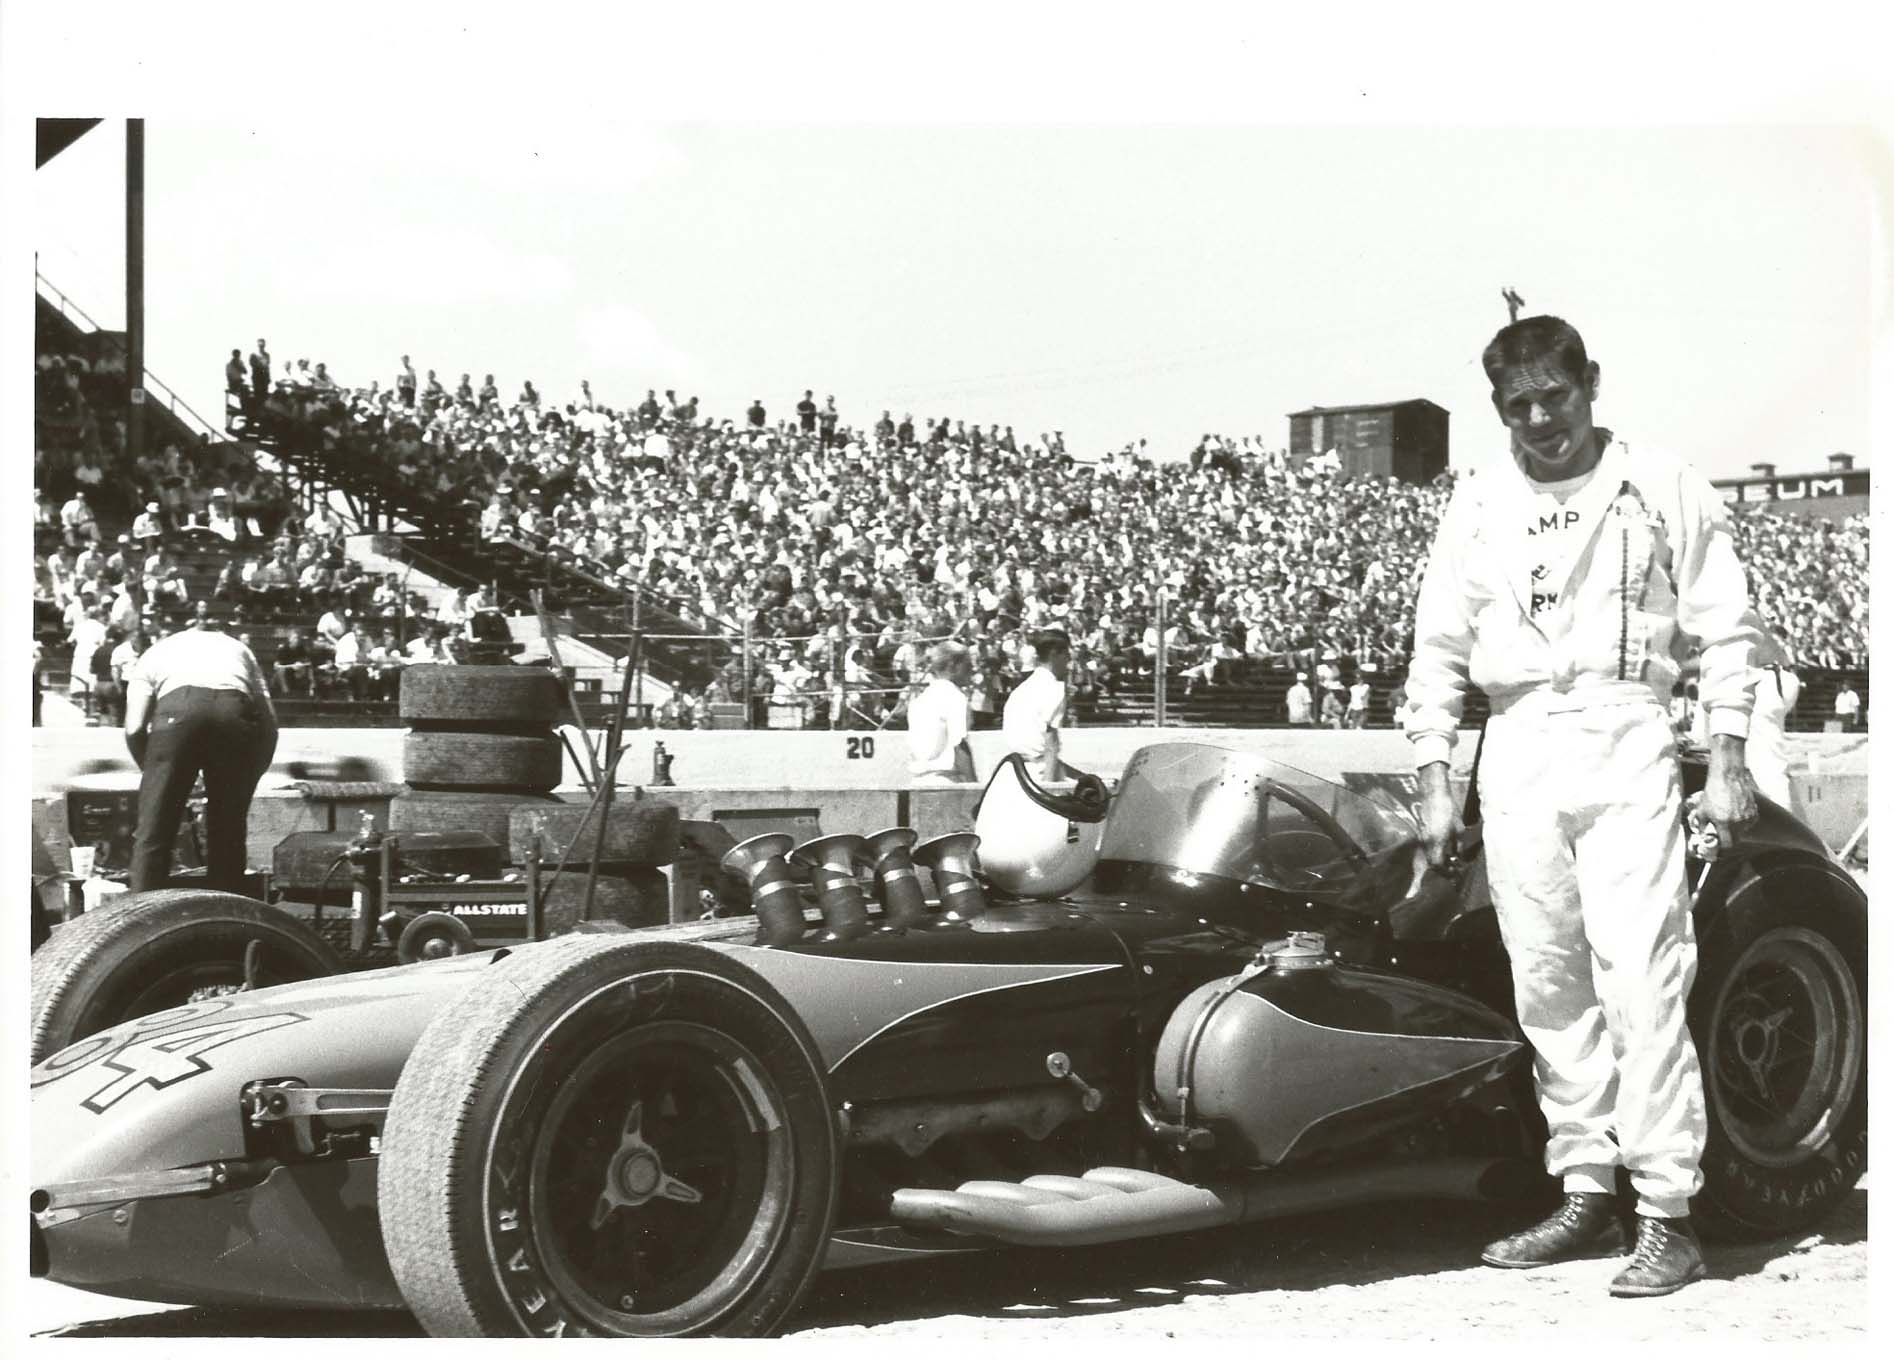 Skip's photo of his slinky roadster taken over a half-century ago makes one wonder why a front engine Indy Car, with today's technology, can't be running the 500. After all, today's front-engined Funny Cars rival rear engine Top Fuel Cars on the dragstrip.